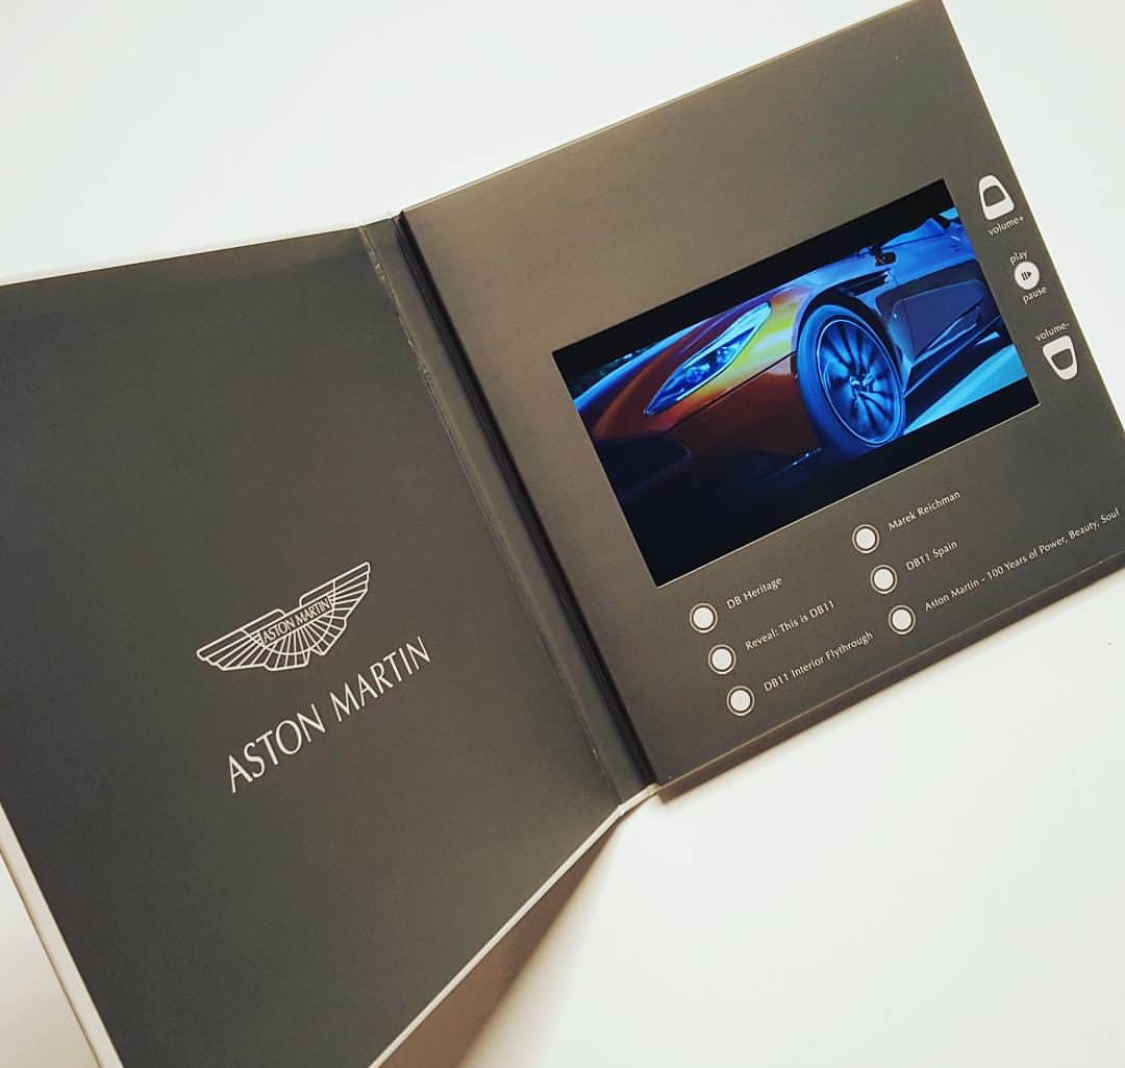 Luxury video invitation cards, business cards and photo album